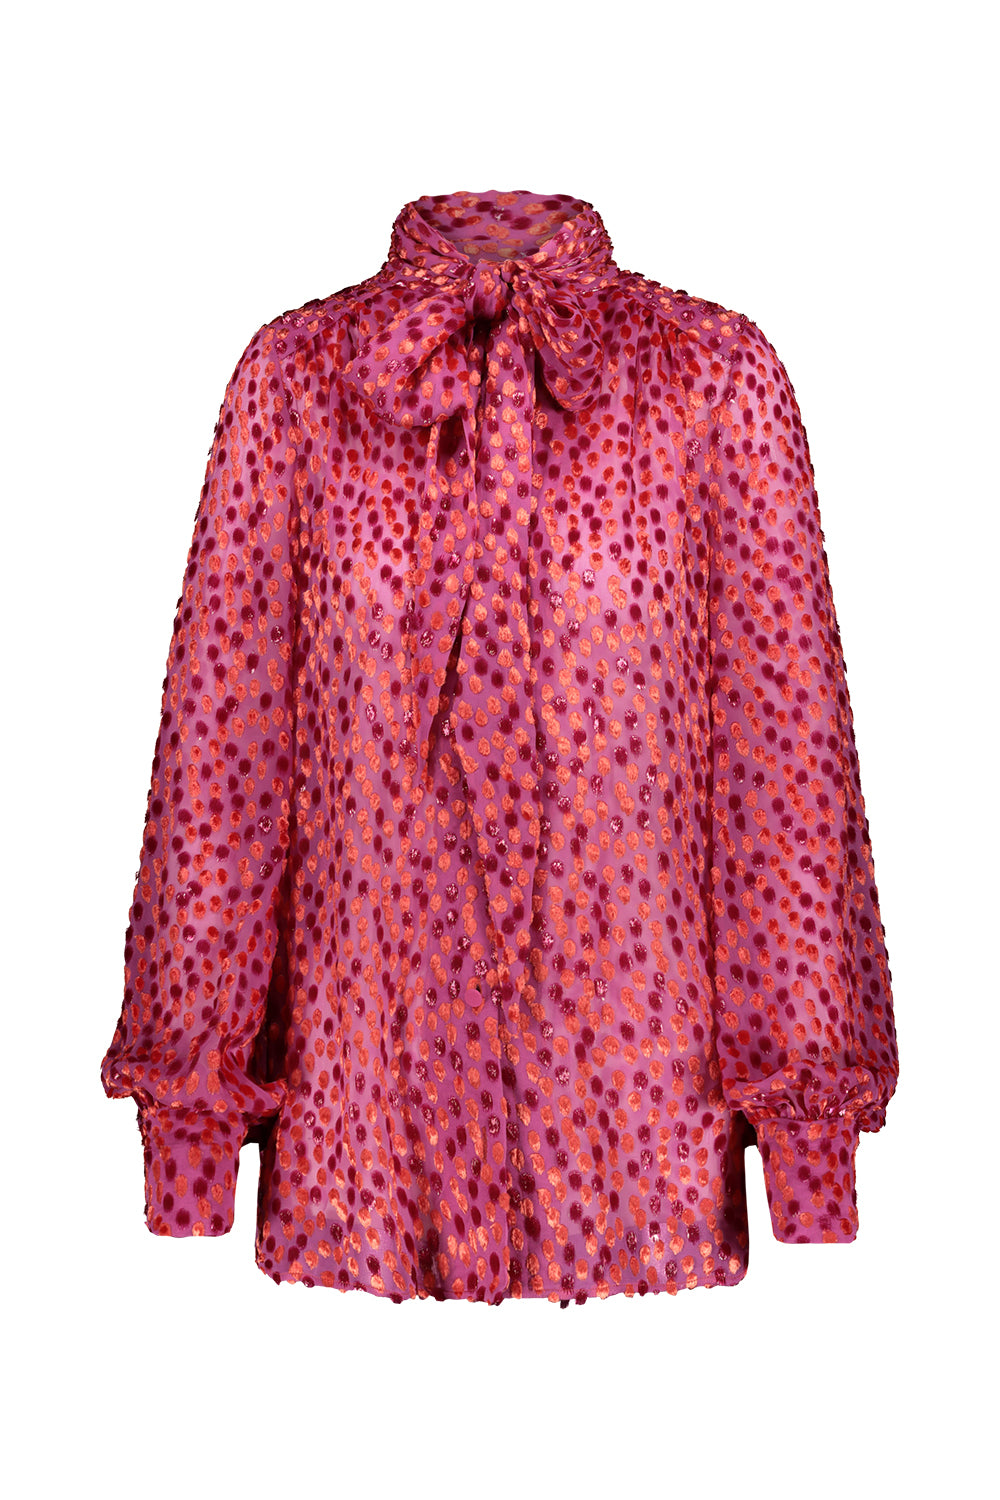 PEGGY PINK - CABRIOLET SHIRT